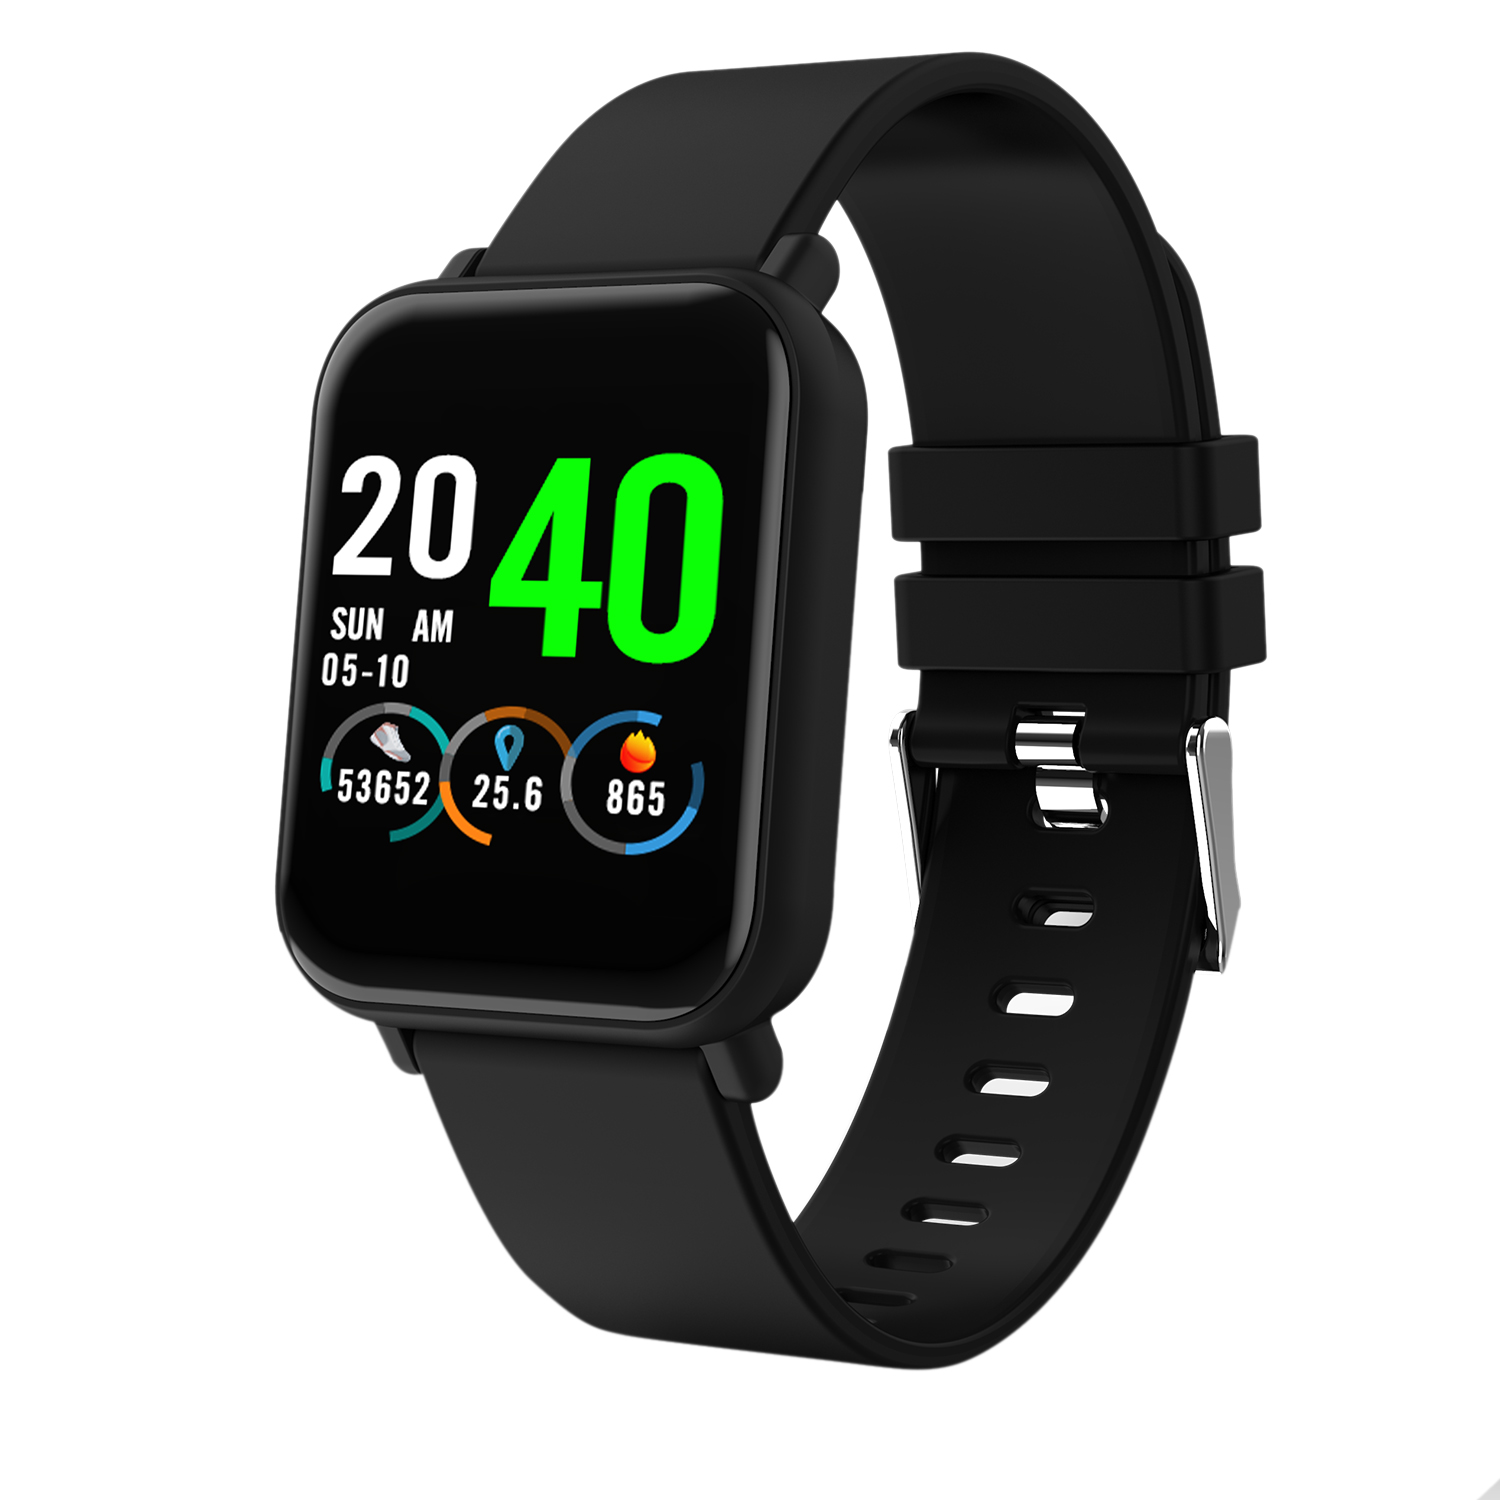 R6 Smart Watch 1.3 inch Full Color Screen 24h HR Blood Pressure Oxygen Monitor Message Call Show IP67 Waterproof Smart Watch image